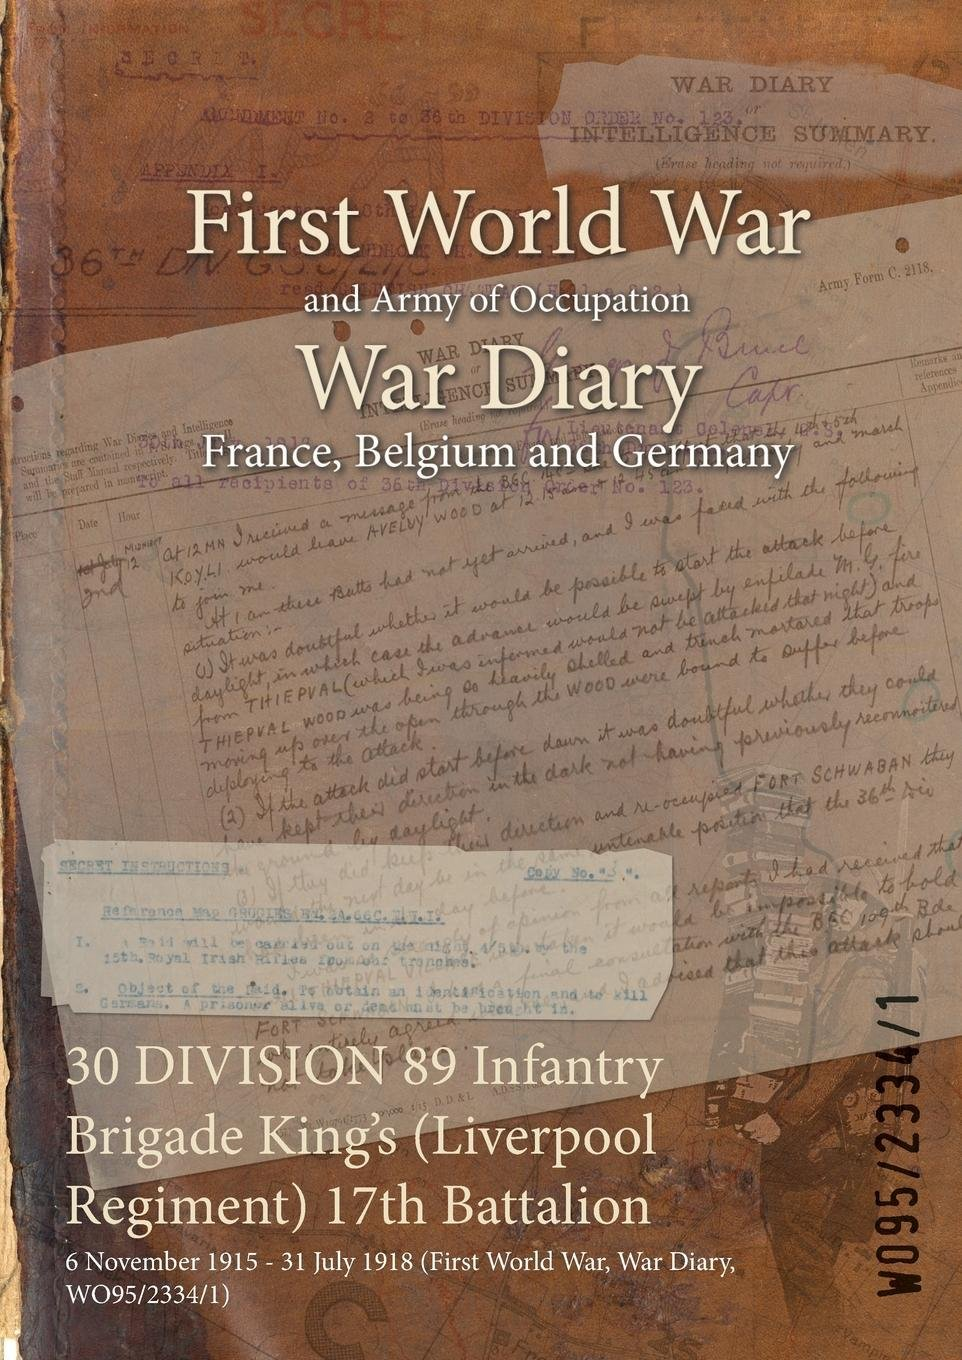 Download 30 Division 89 Infantry Brigade King's (Liverpool Regiment) 17th Battalion: 6 November 1915 - 31 July 1918 (First World War, War Diary, Wo95/2334/1) pdf